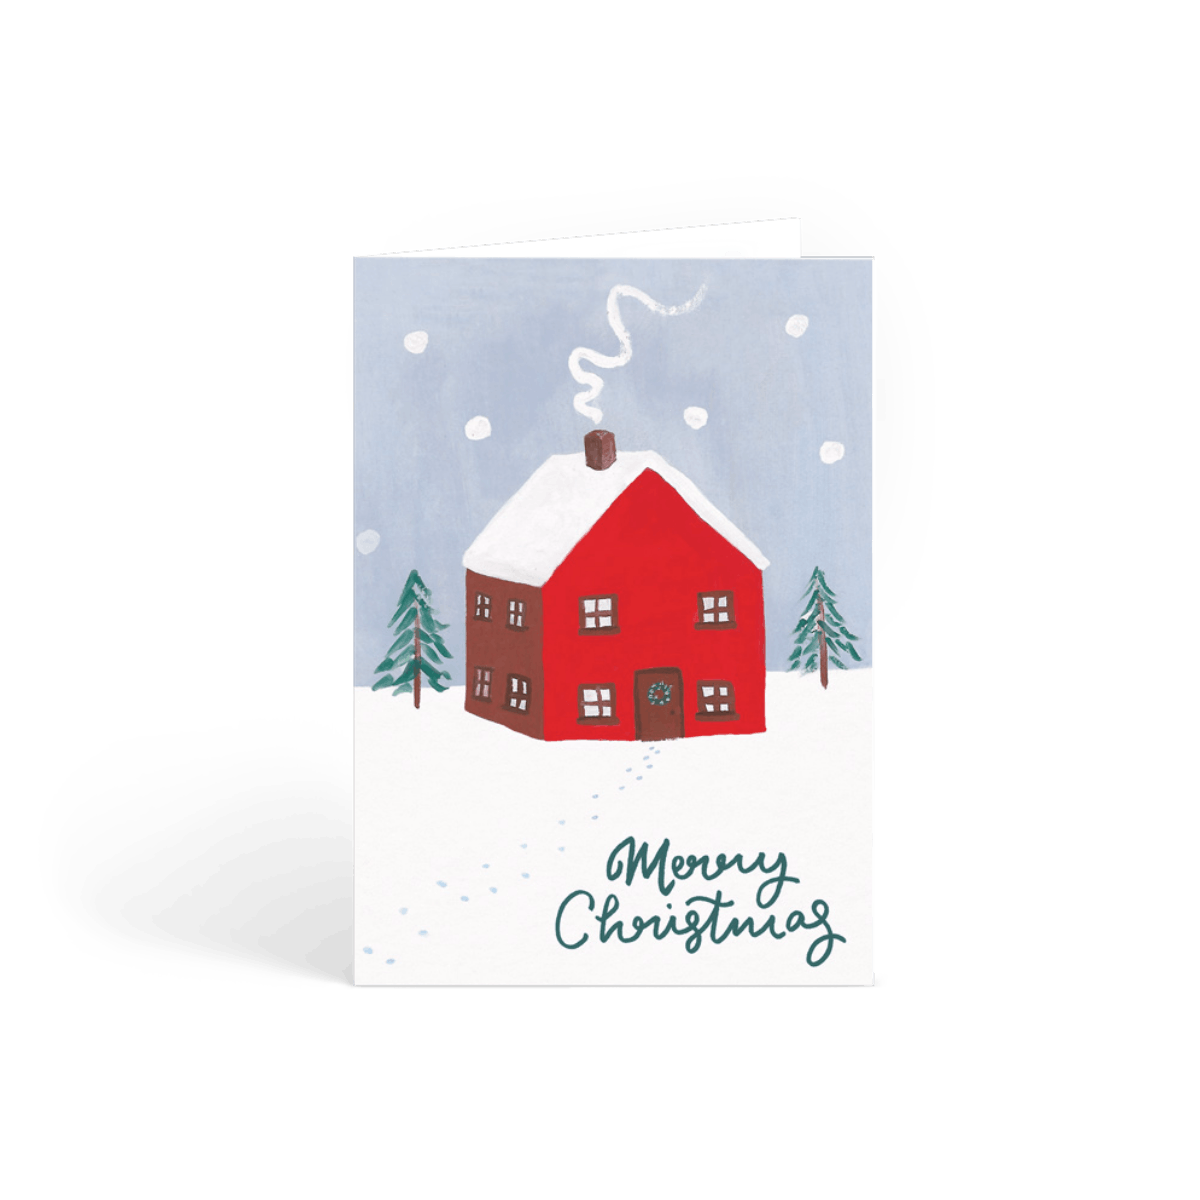 Https%3a%2f%2fwww.papier.com%2fproduct image%2f30206%2f2%2fchristmas cottage 7618 front 1509022399.png?ixlib=rb 1.1